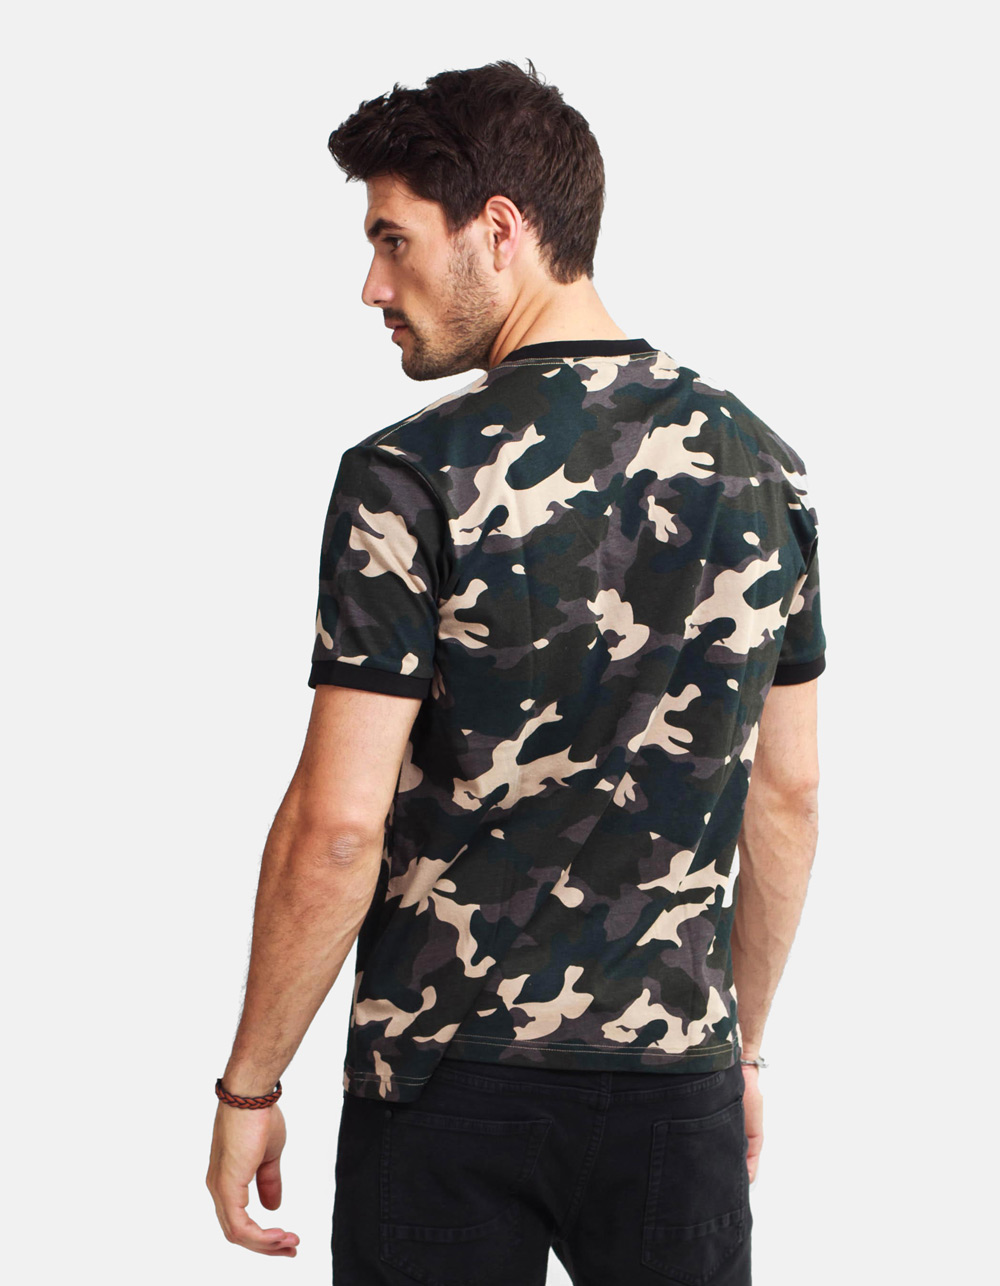 Camouflage printed t-shirt - Backside